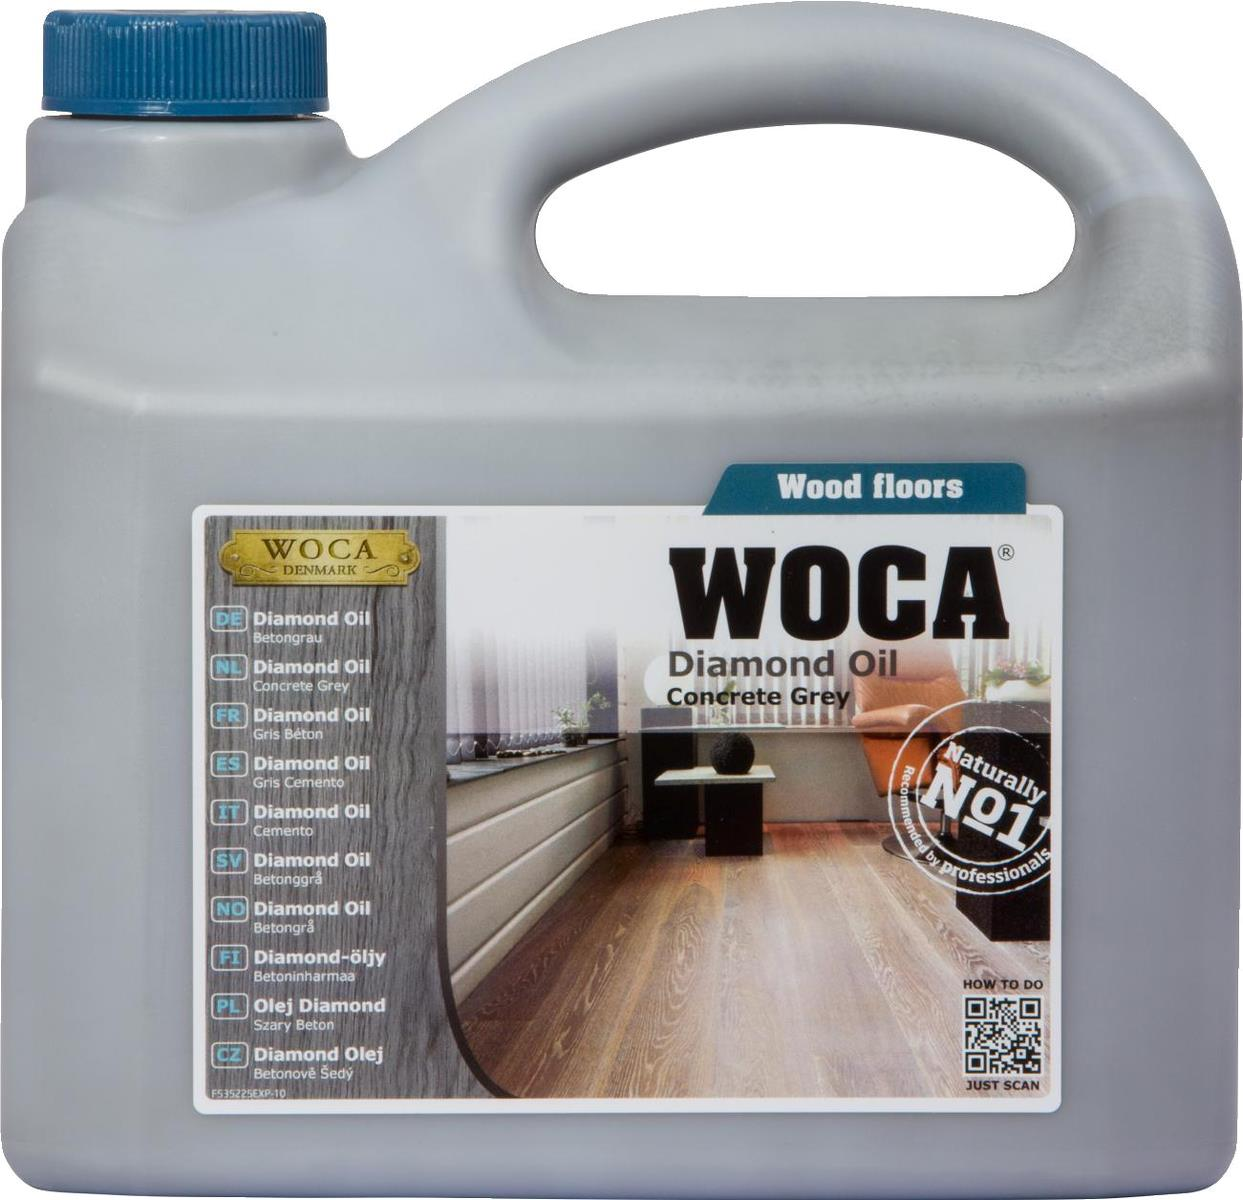 WOCA Diamond Oil Concrete Grey 2.5L